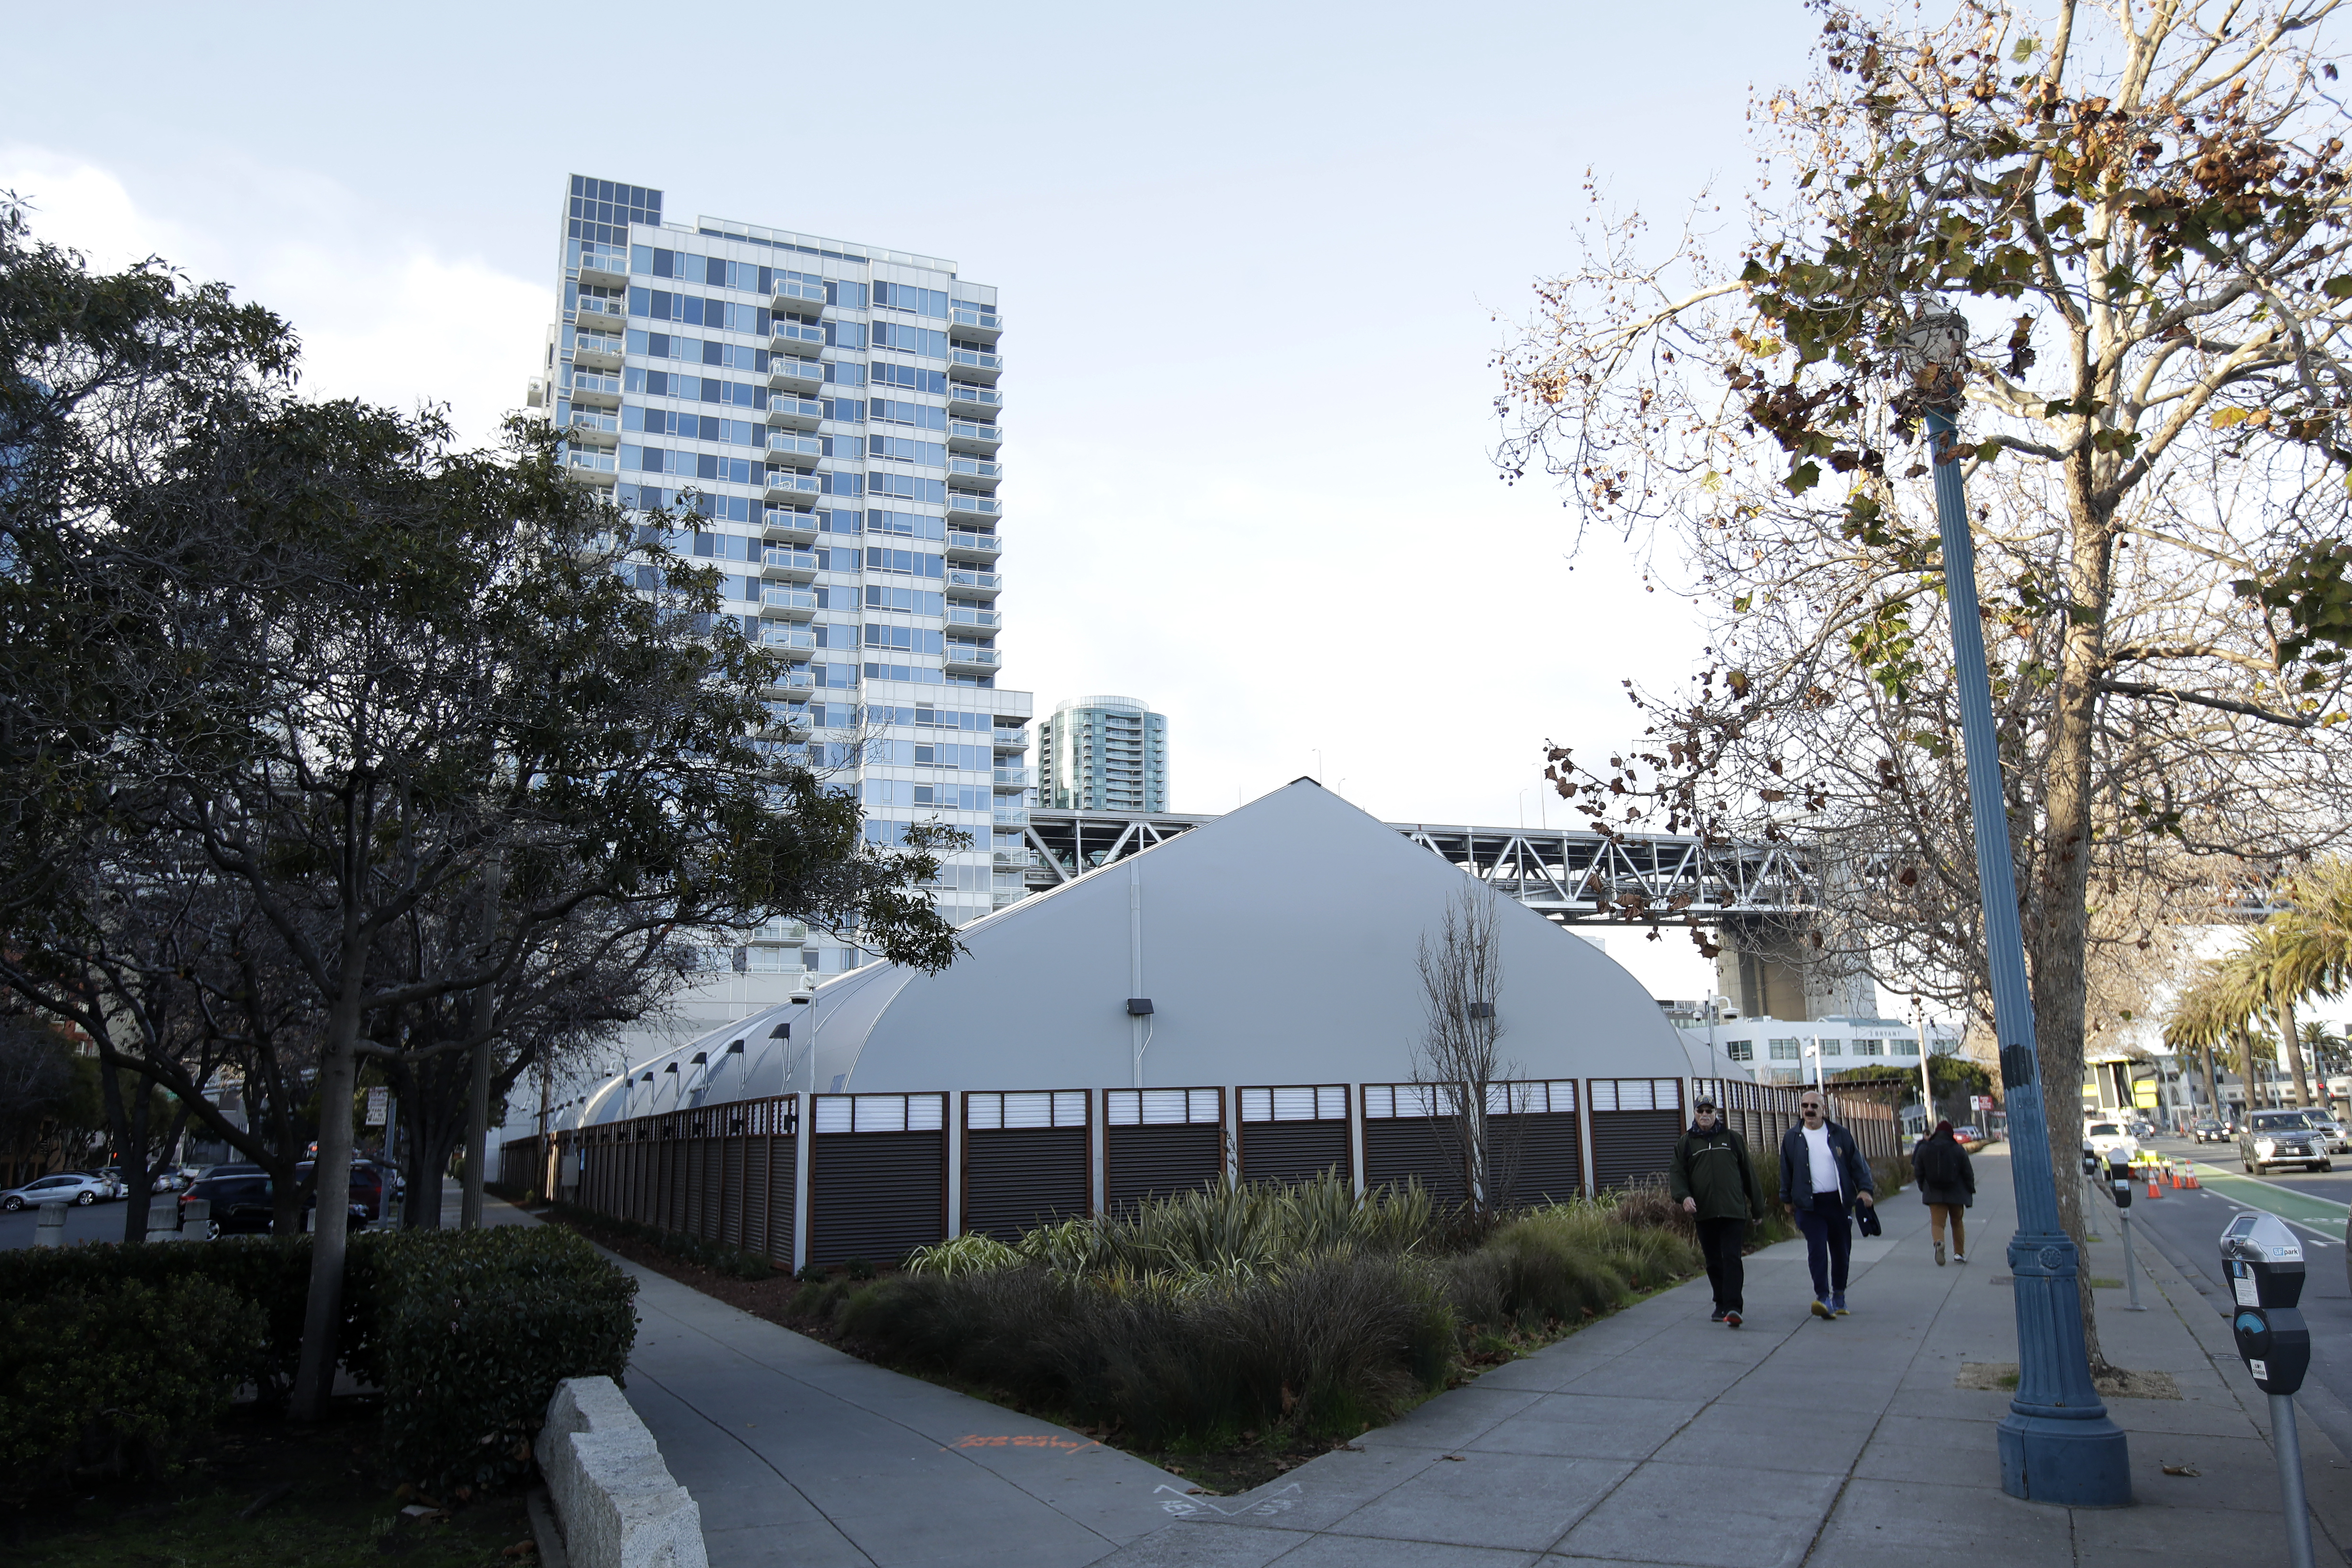 A tent-like structure cowers in front of a tall luxury condo building.